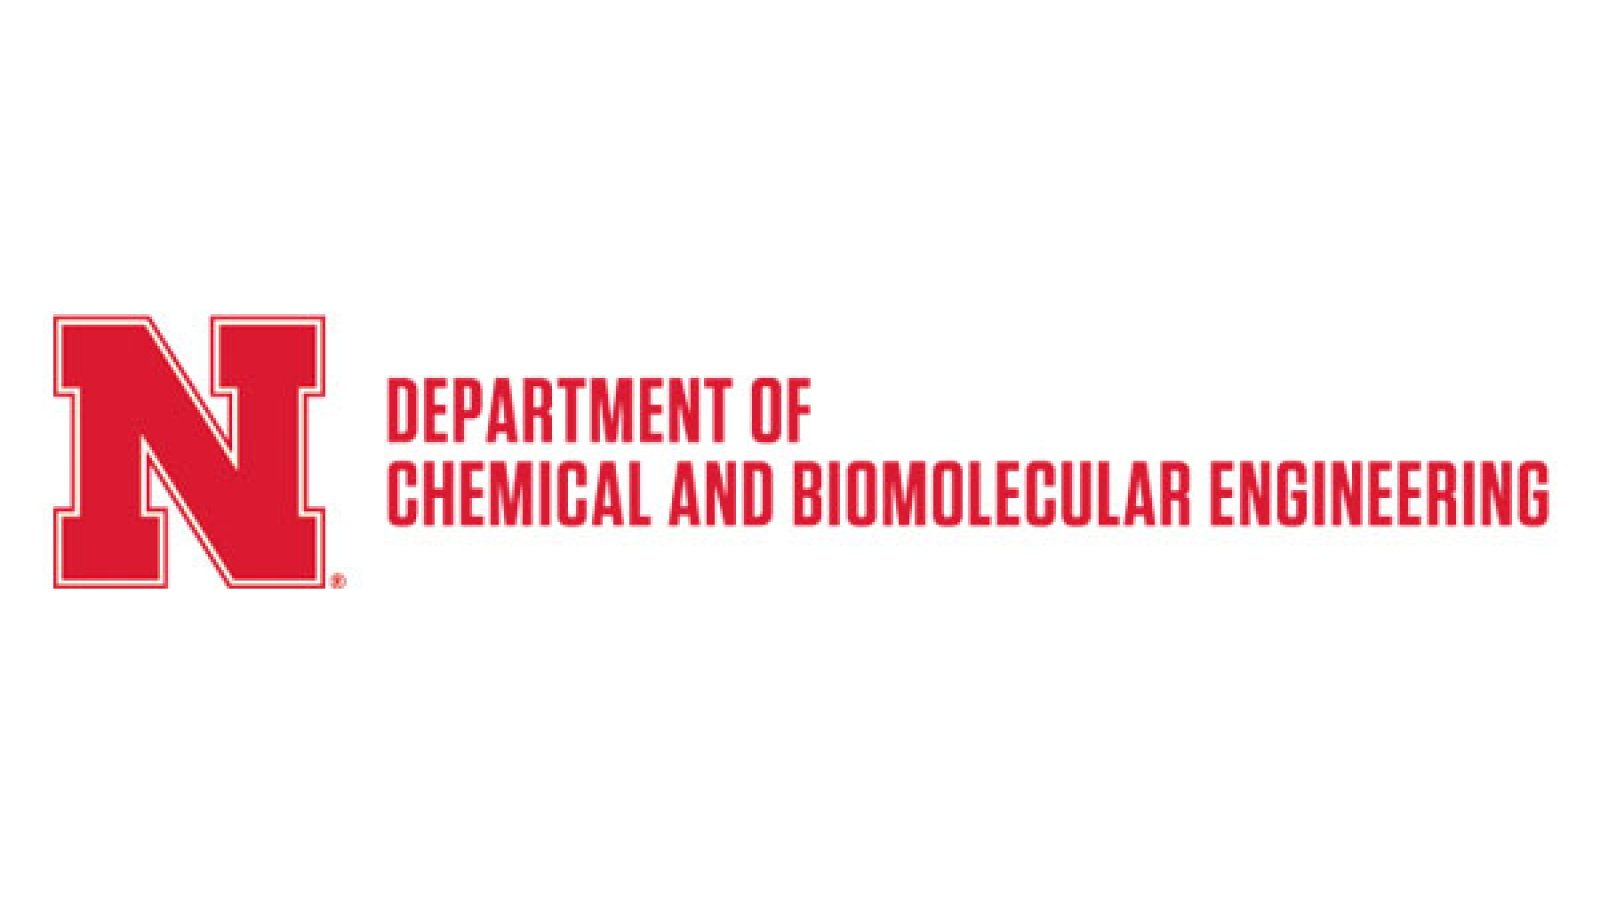 Department of Chemical and Bimolecular Engineering